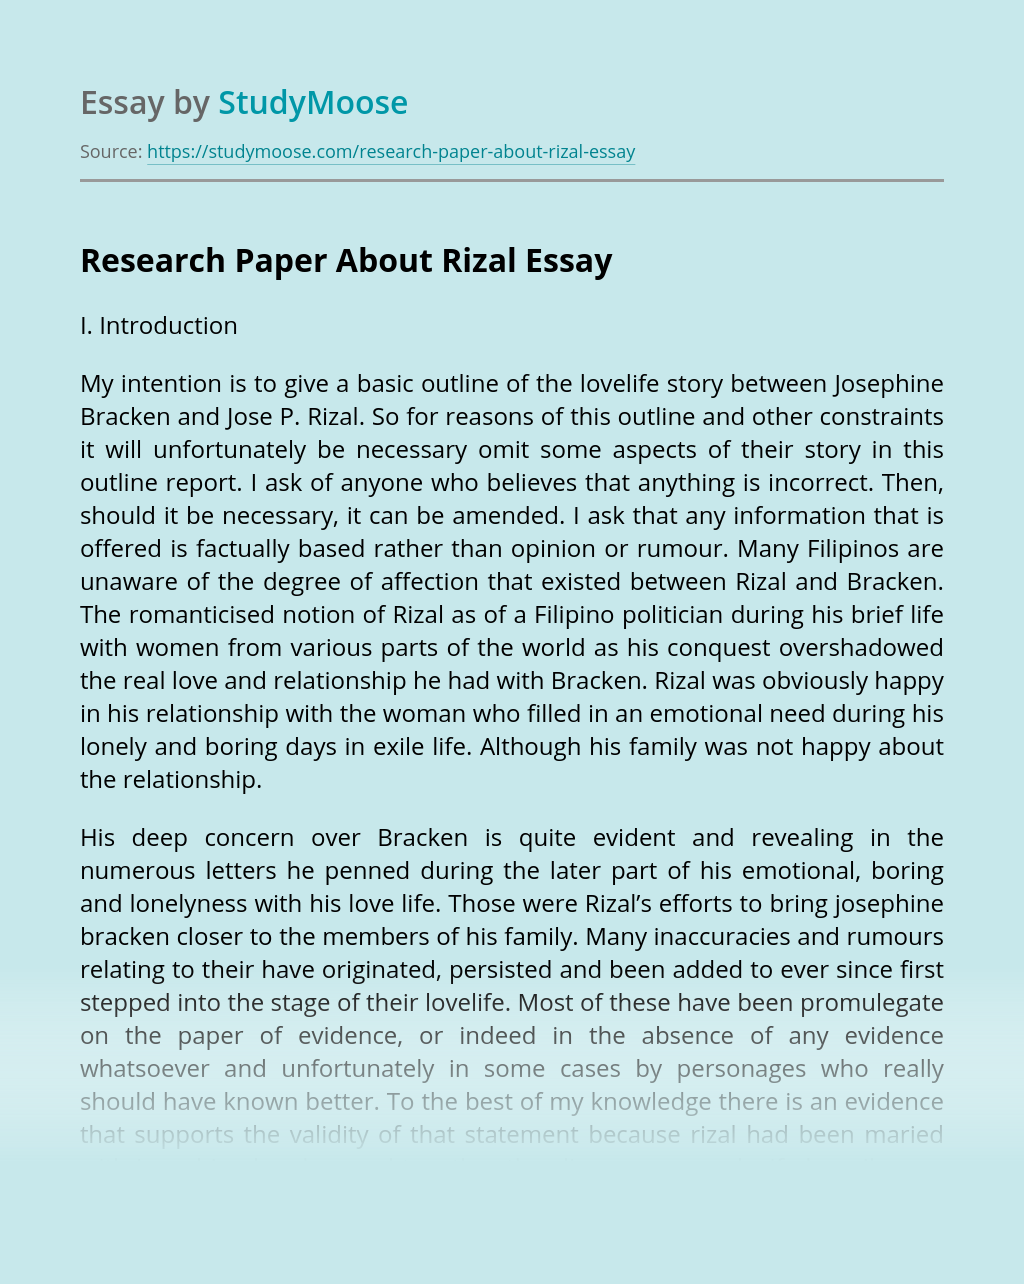 Research Paper About Rizal